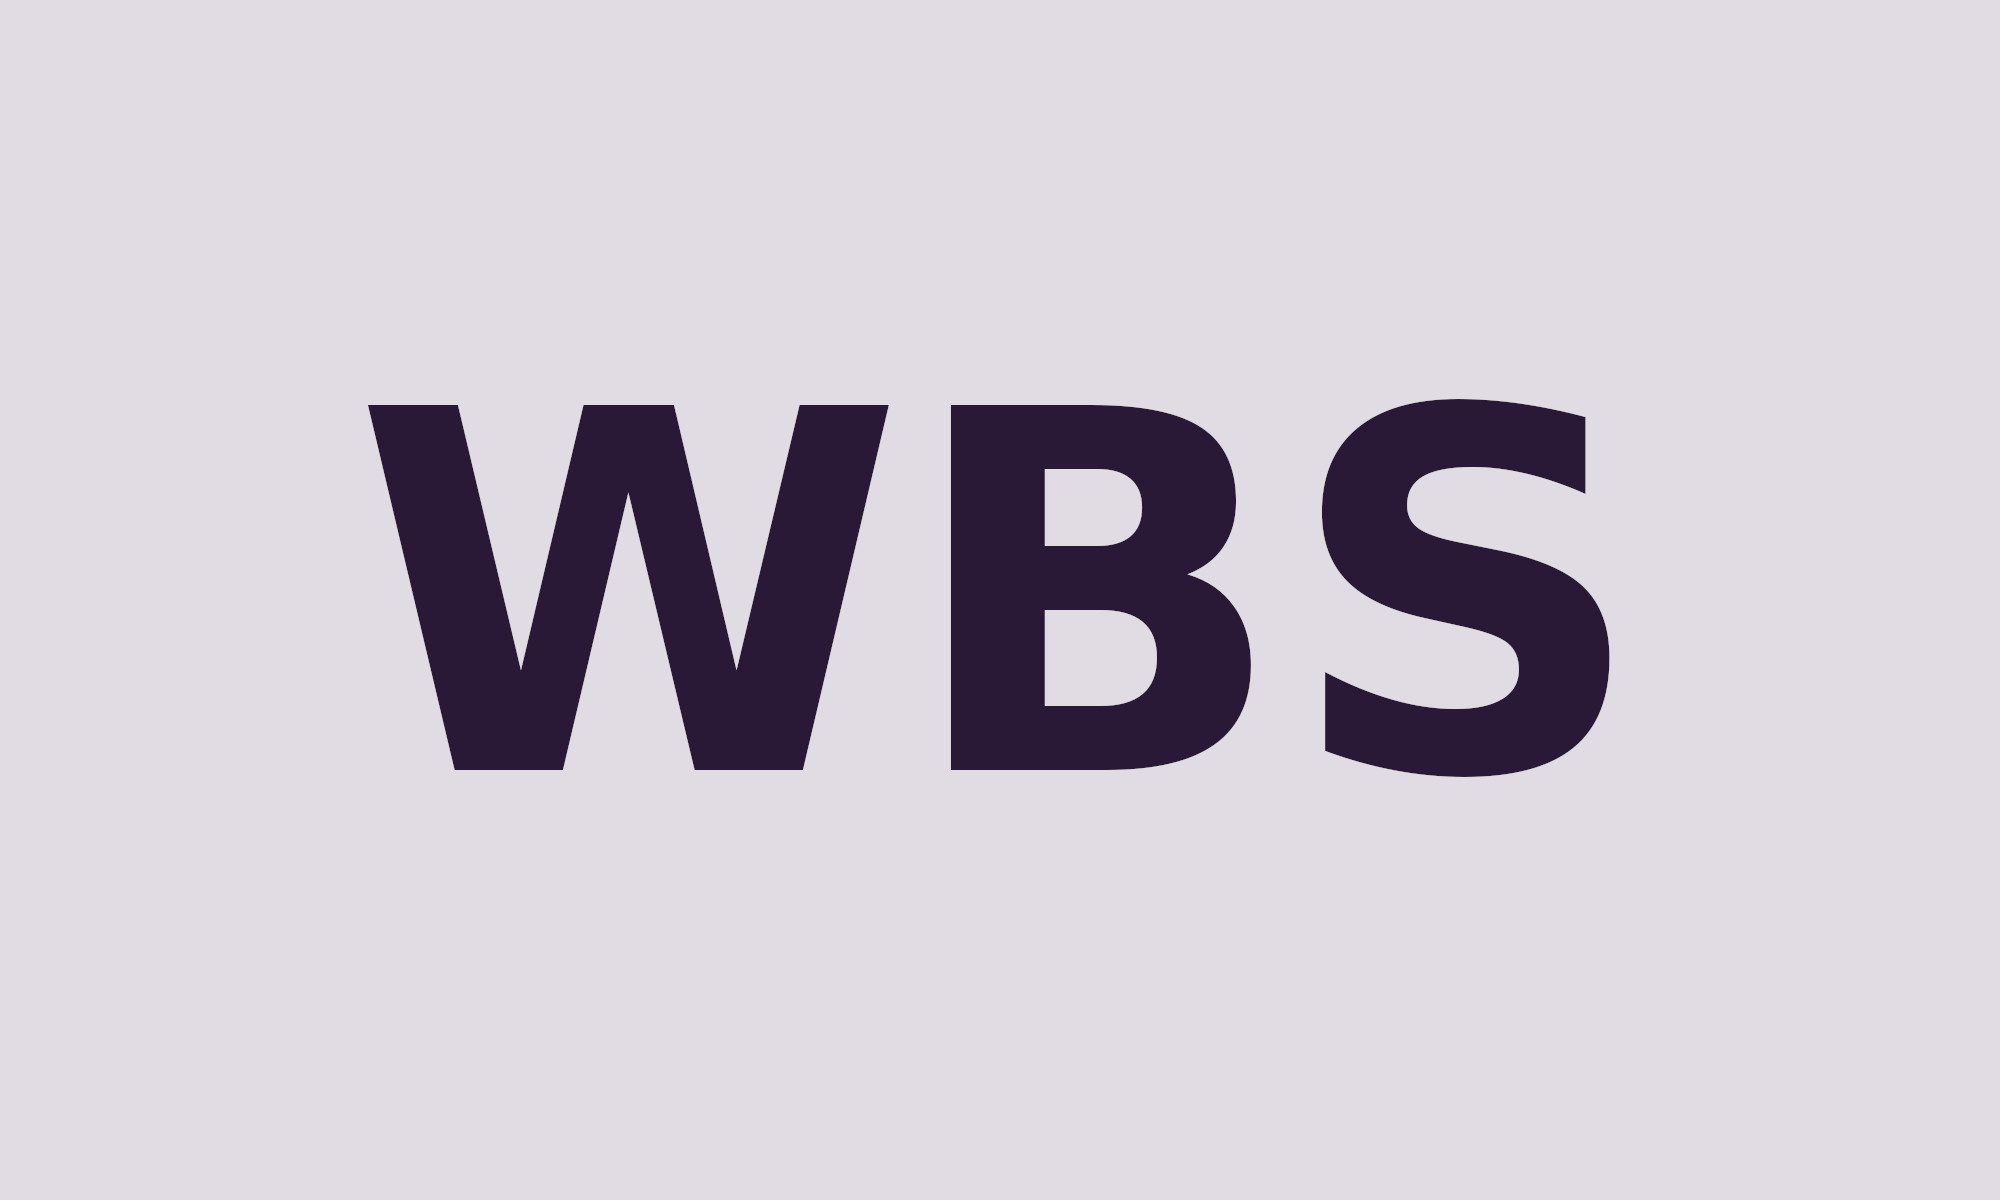 Image with WBS acronym